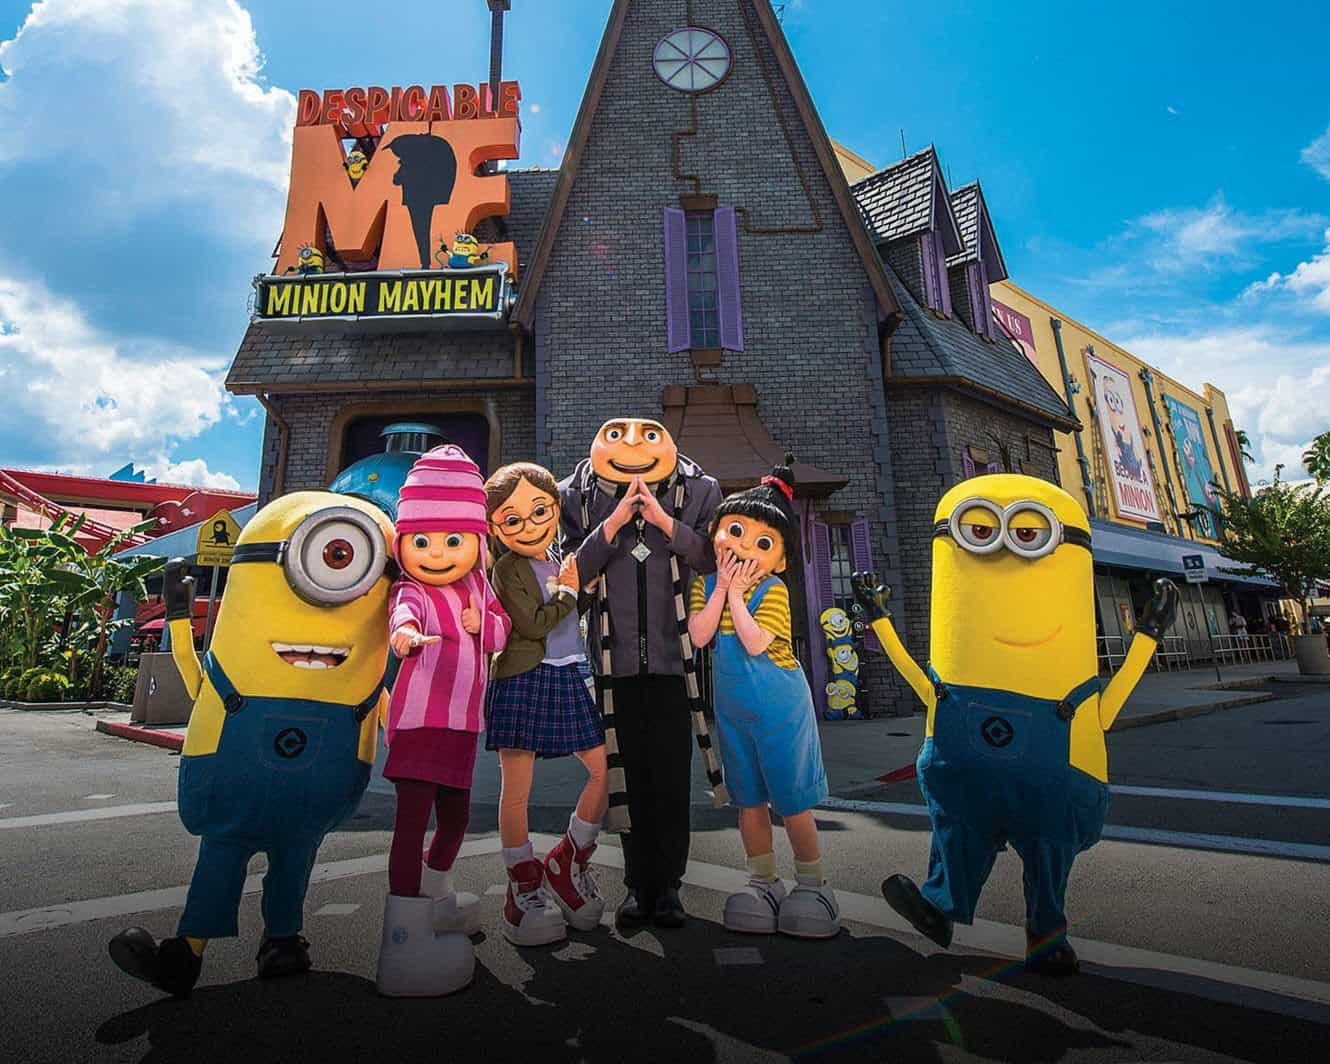 despicable-me-minion-mayhem-ride-characters